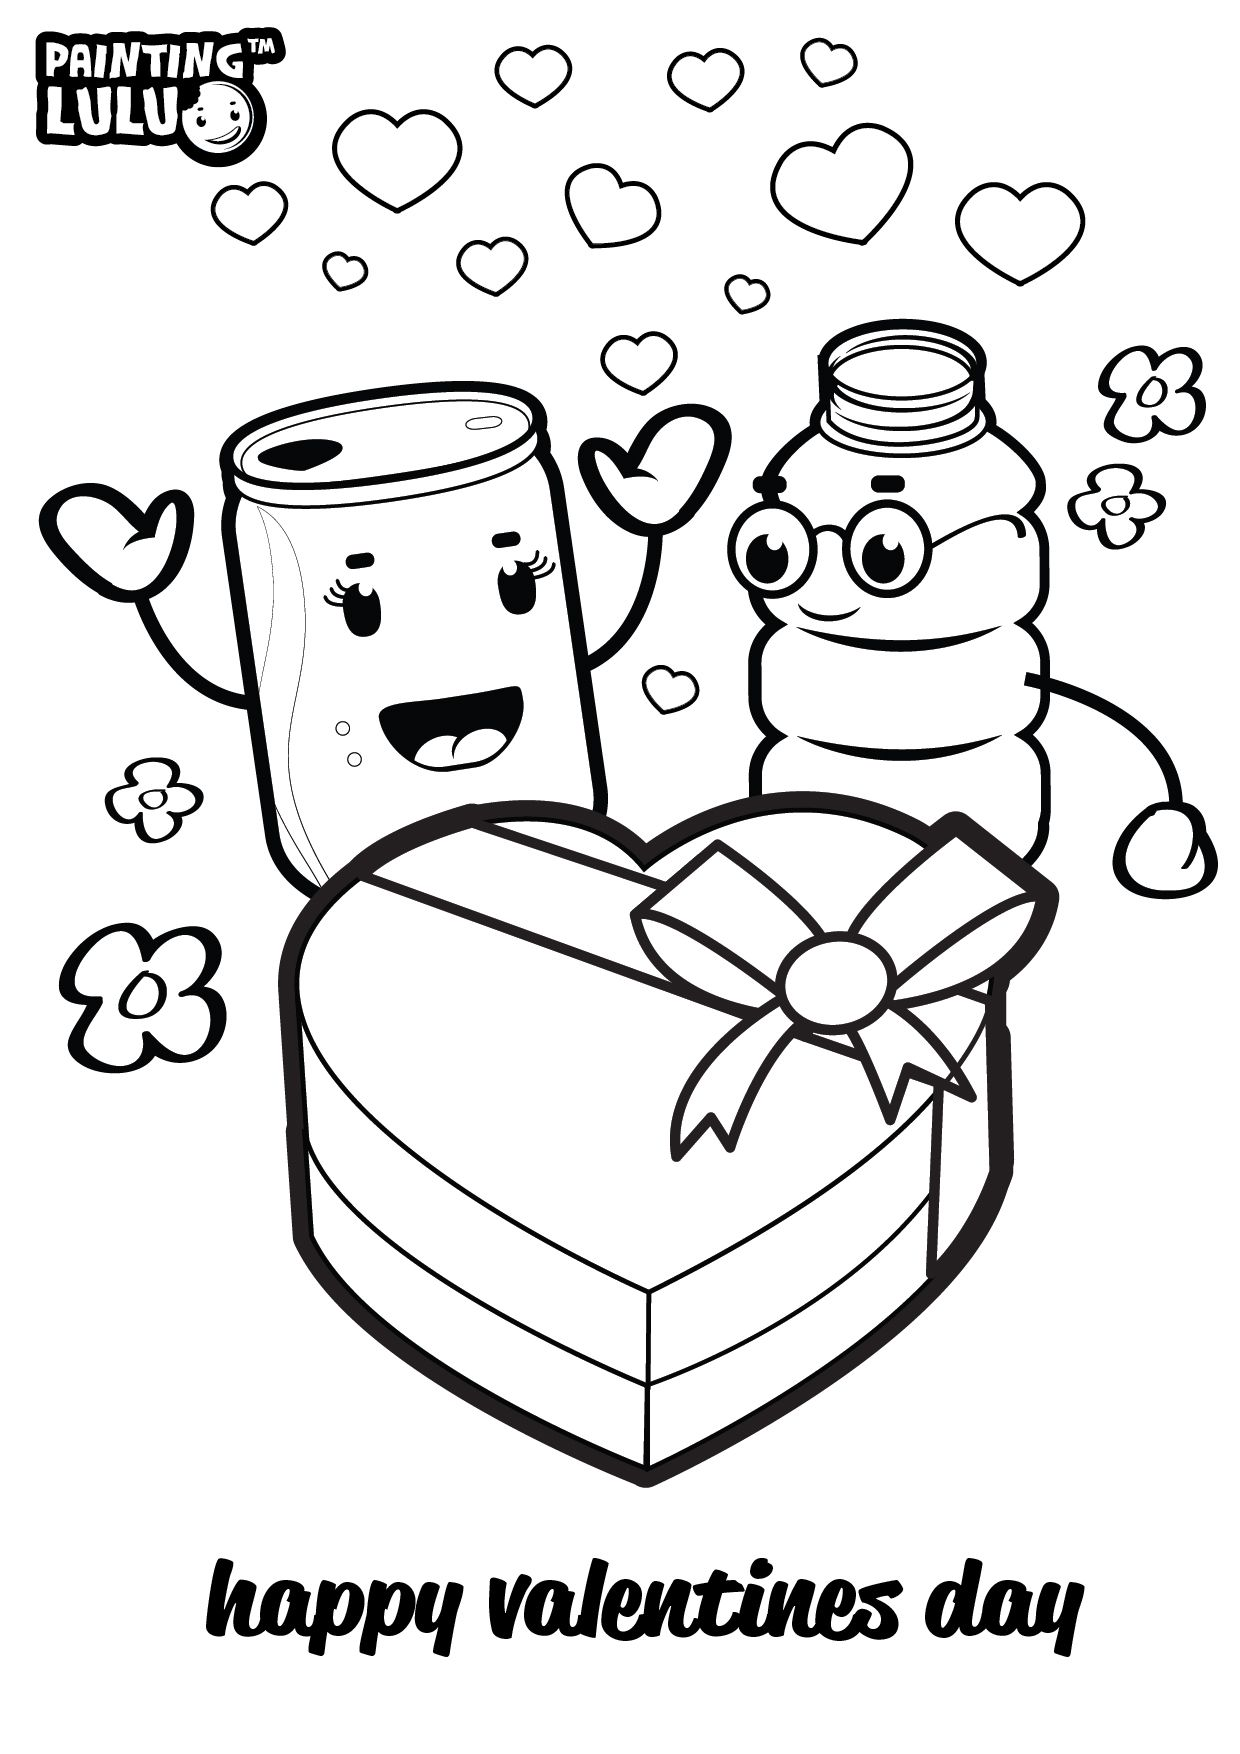 Color Up Your Valentine Happy Valentines Day For More Amazing Coloring Pages